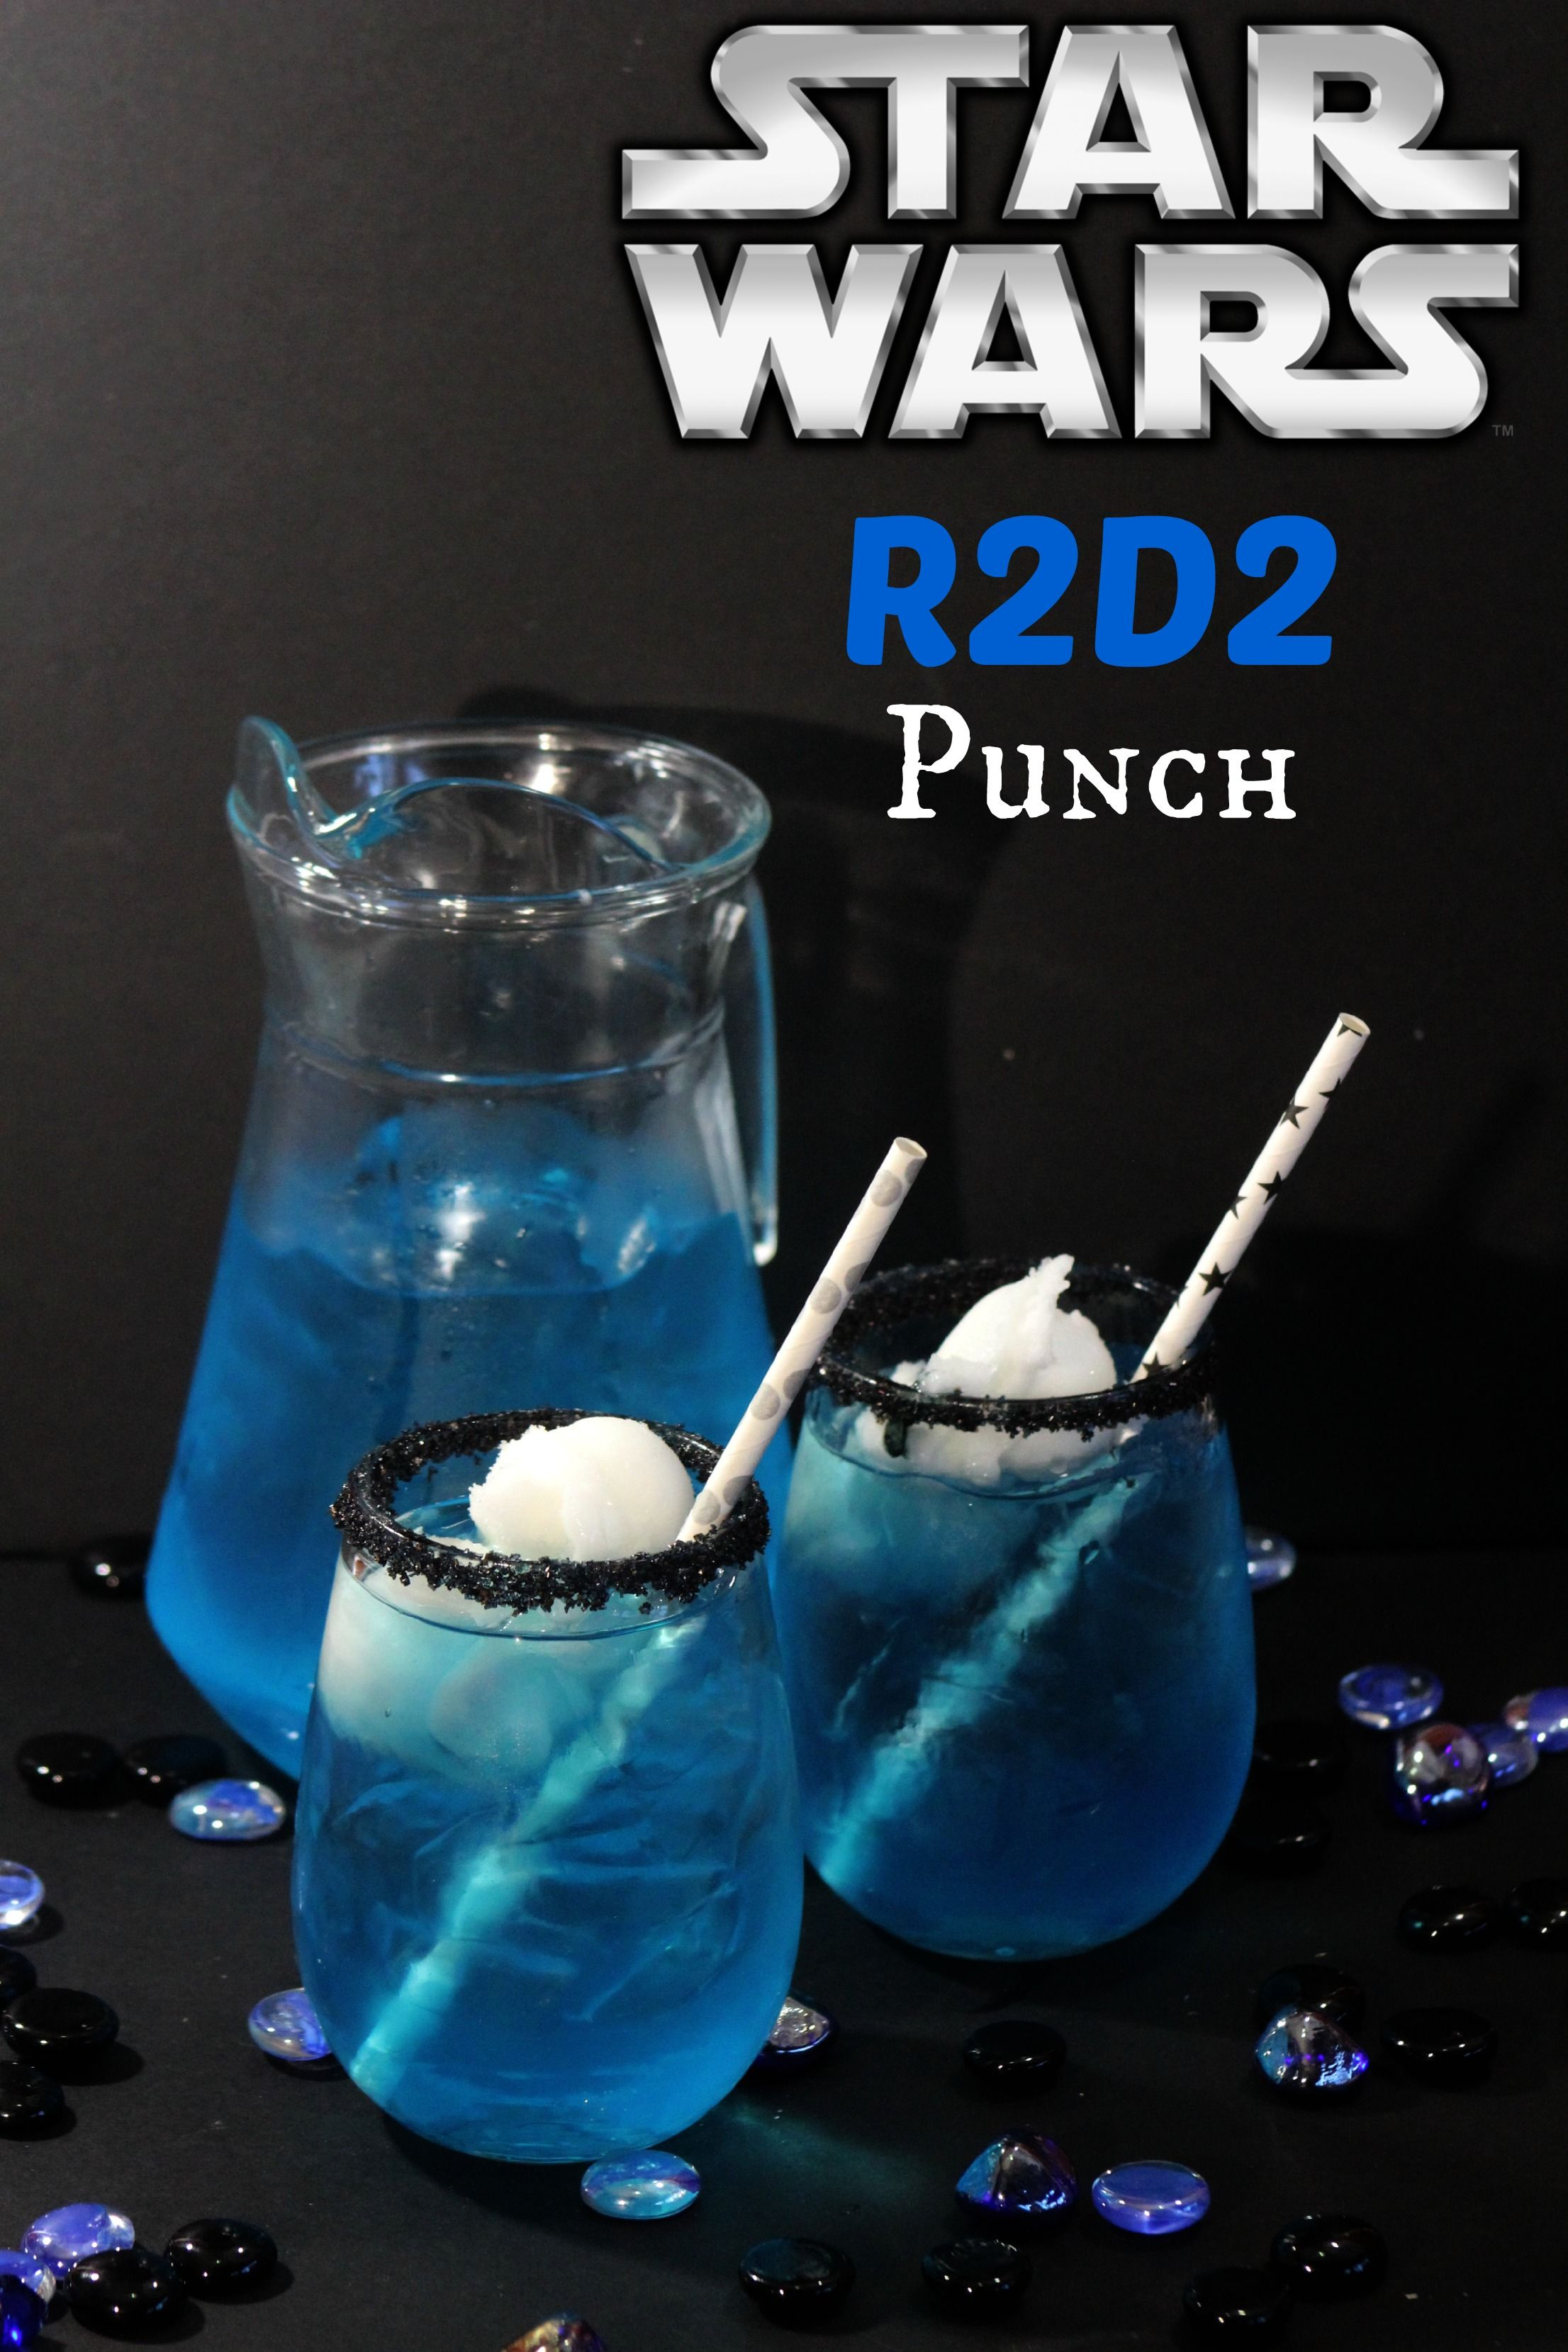 Star wars R2D2 punch Recipe - Fun drink idea for your Star Wars ...